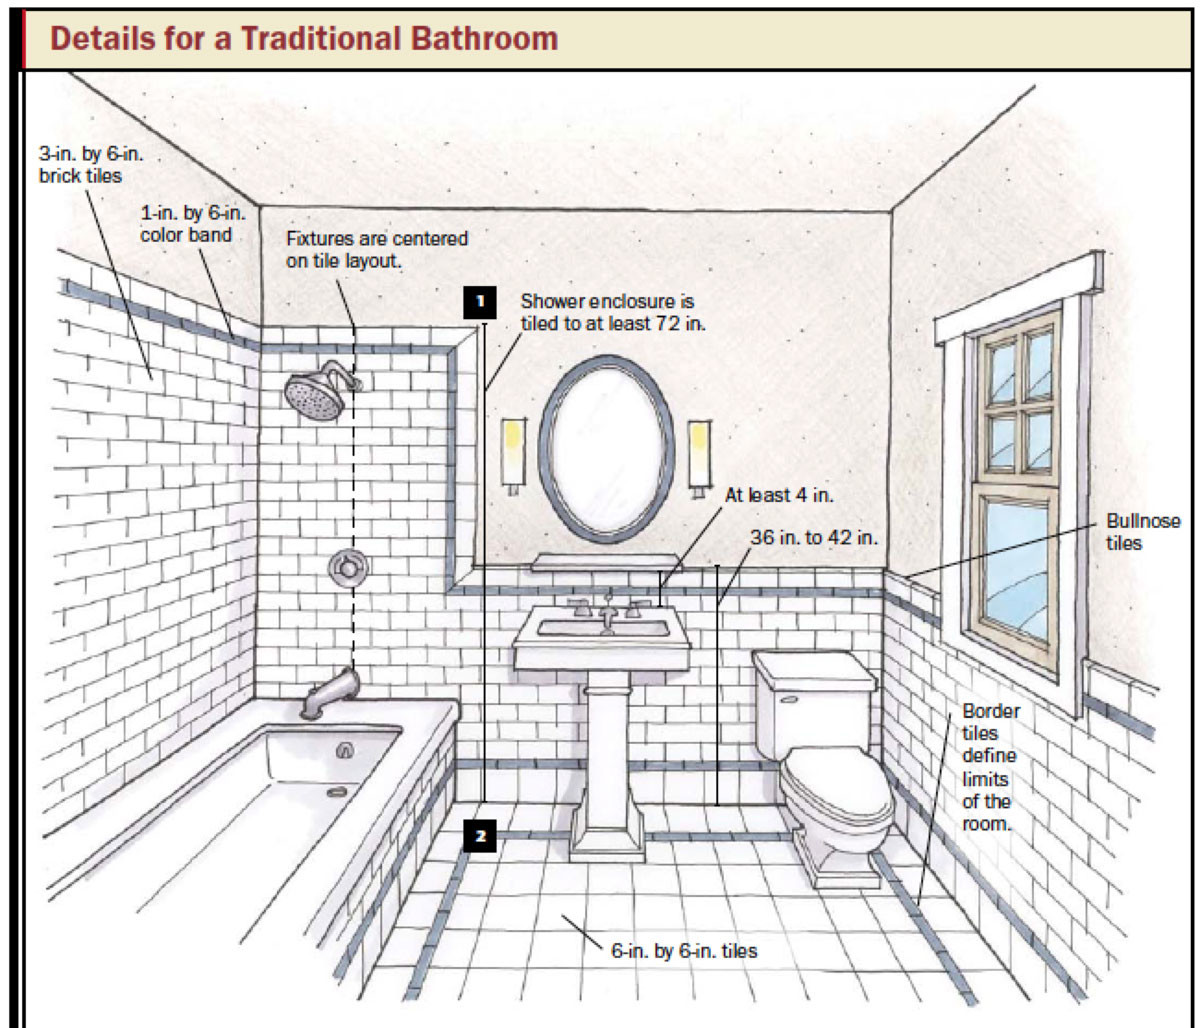 Bathroom layout dimensions - Bathroom Layout Dimensions 24